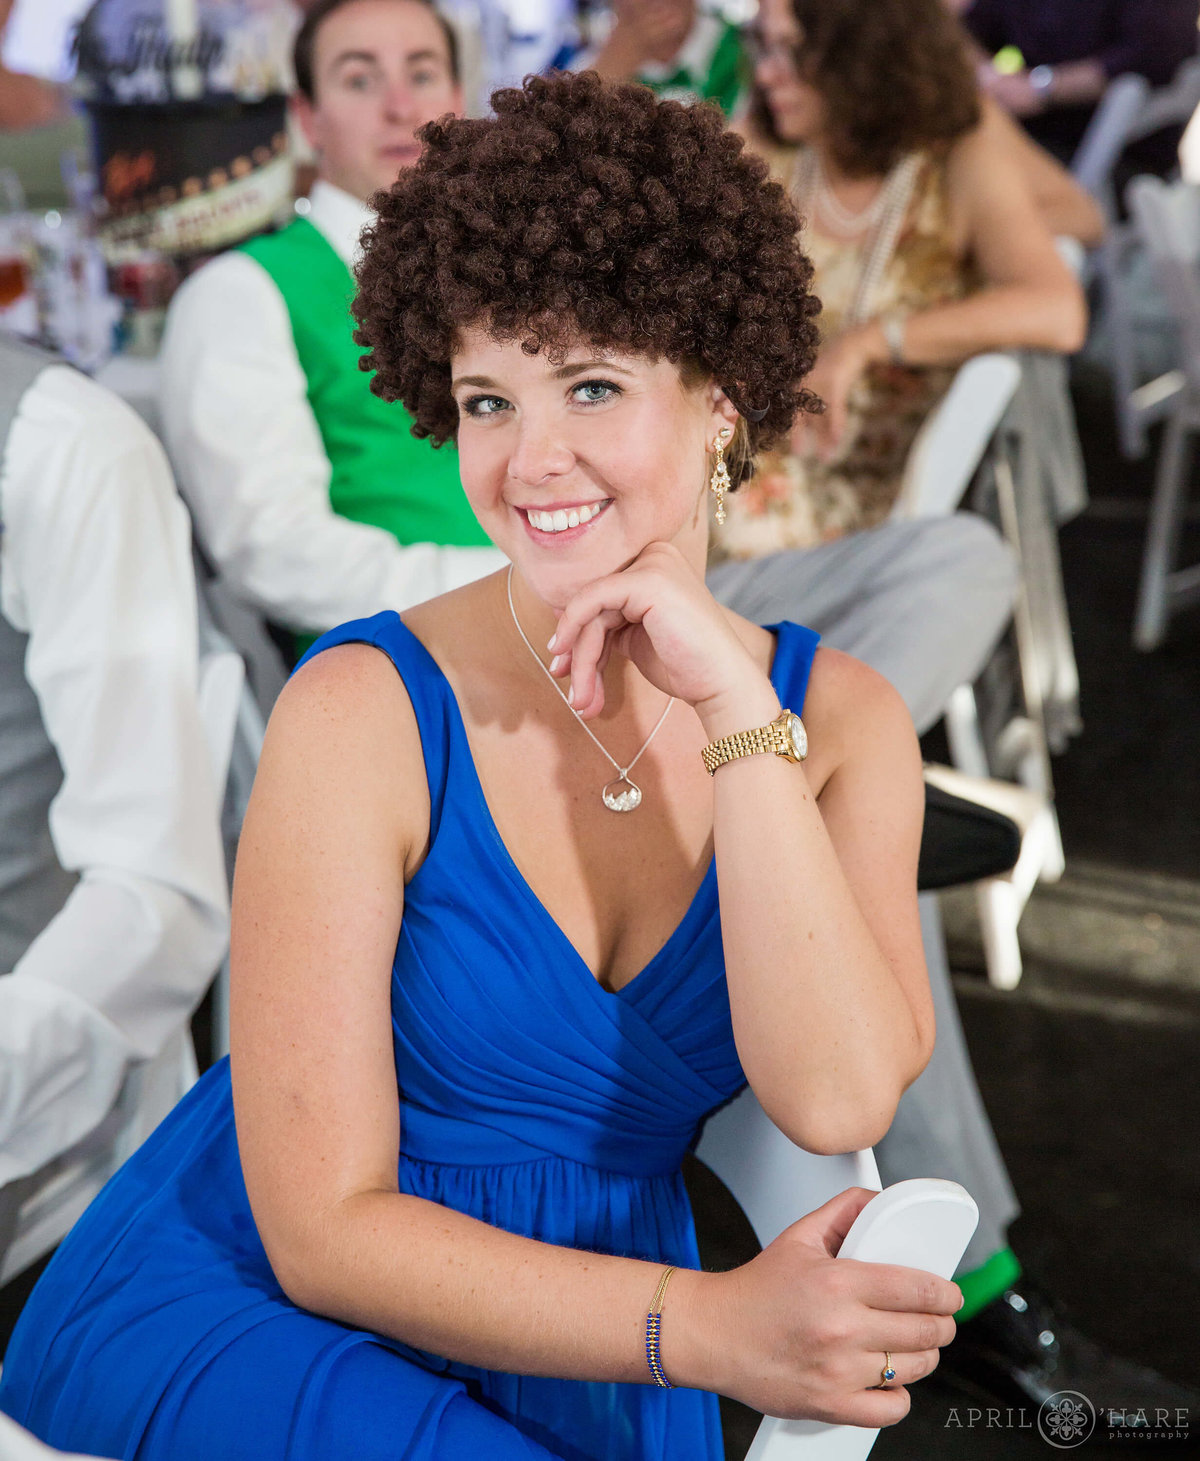 Bridesmaid wearing a silly wig at a Boulder Wedding Reception at Chautauqua Dining Hall